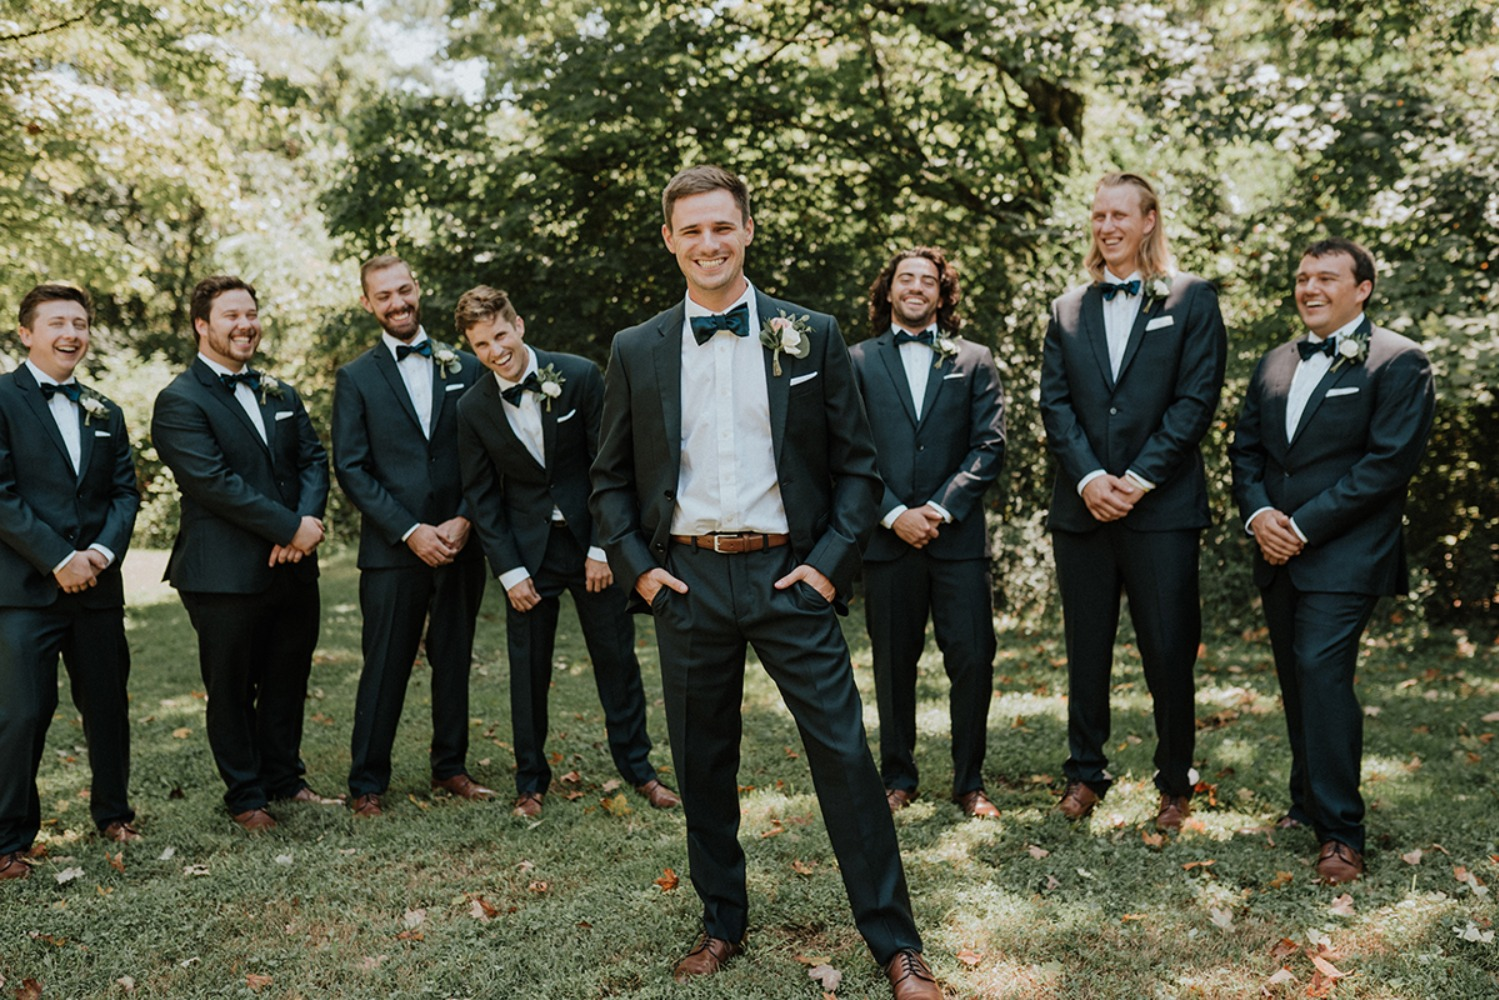 groom and his men looking dapper